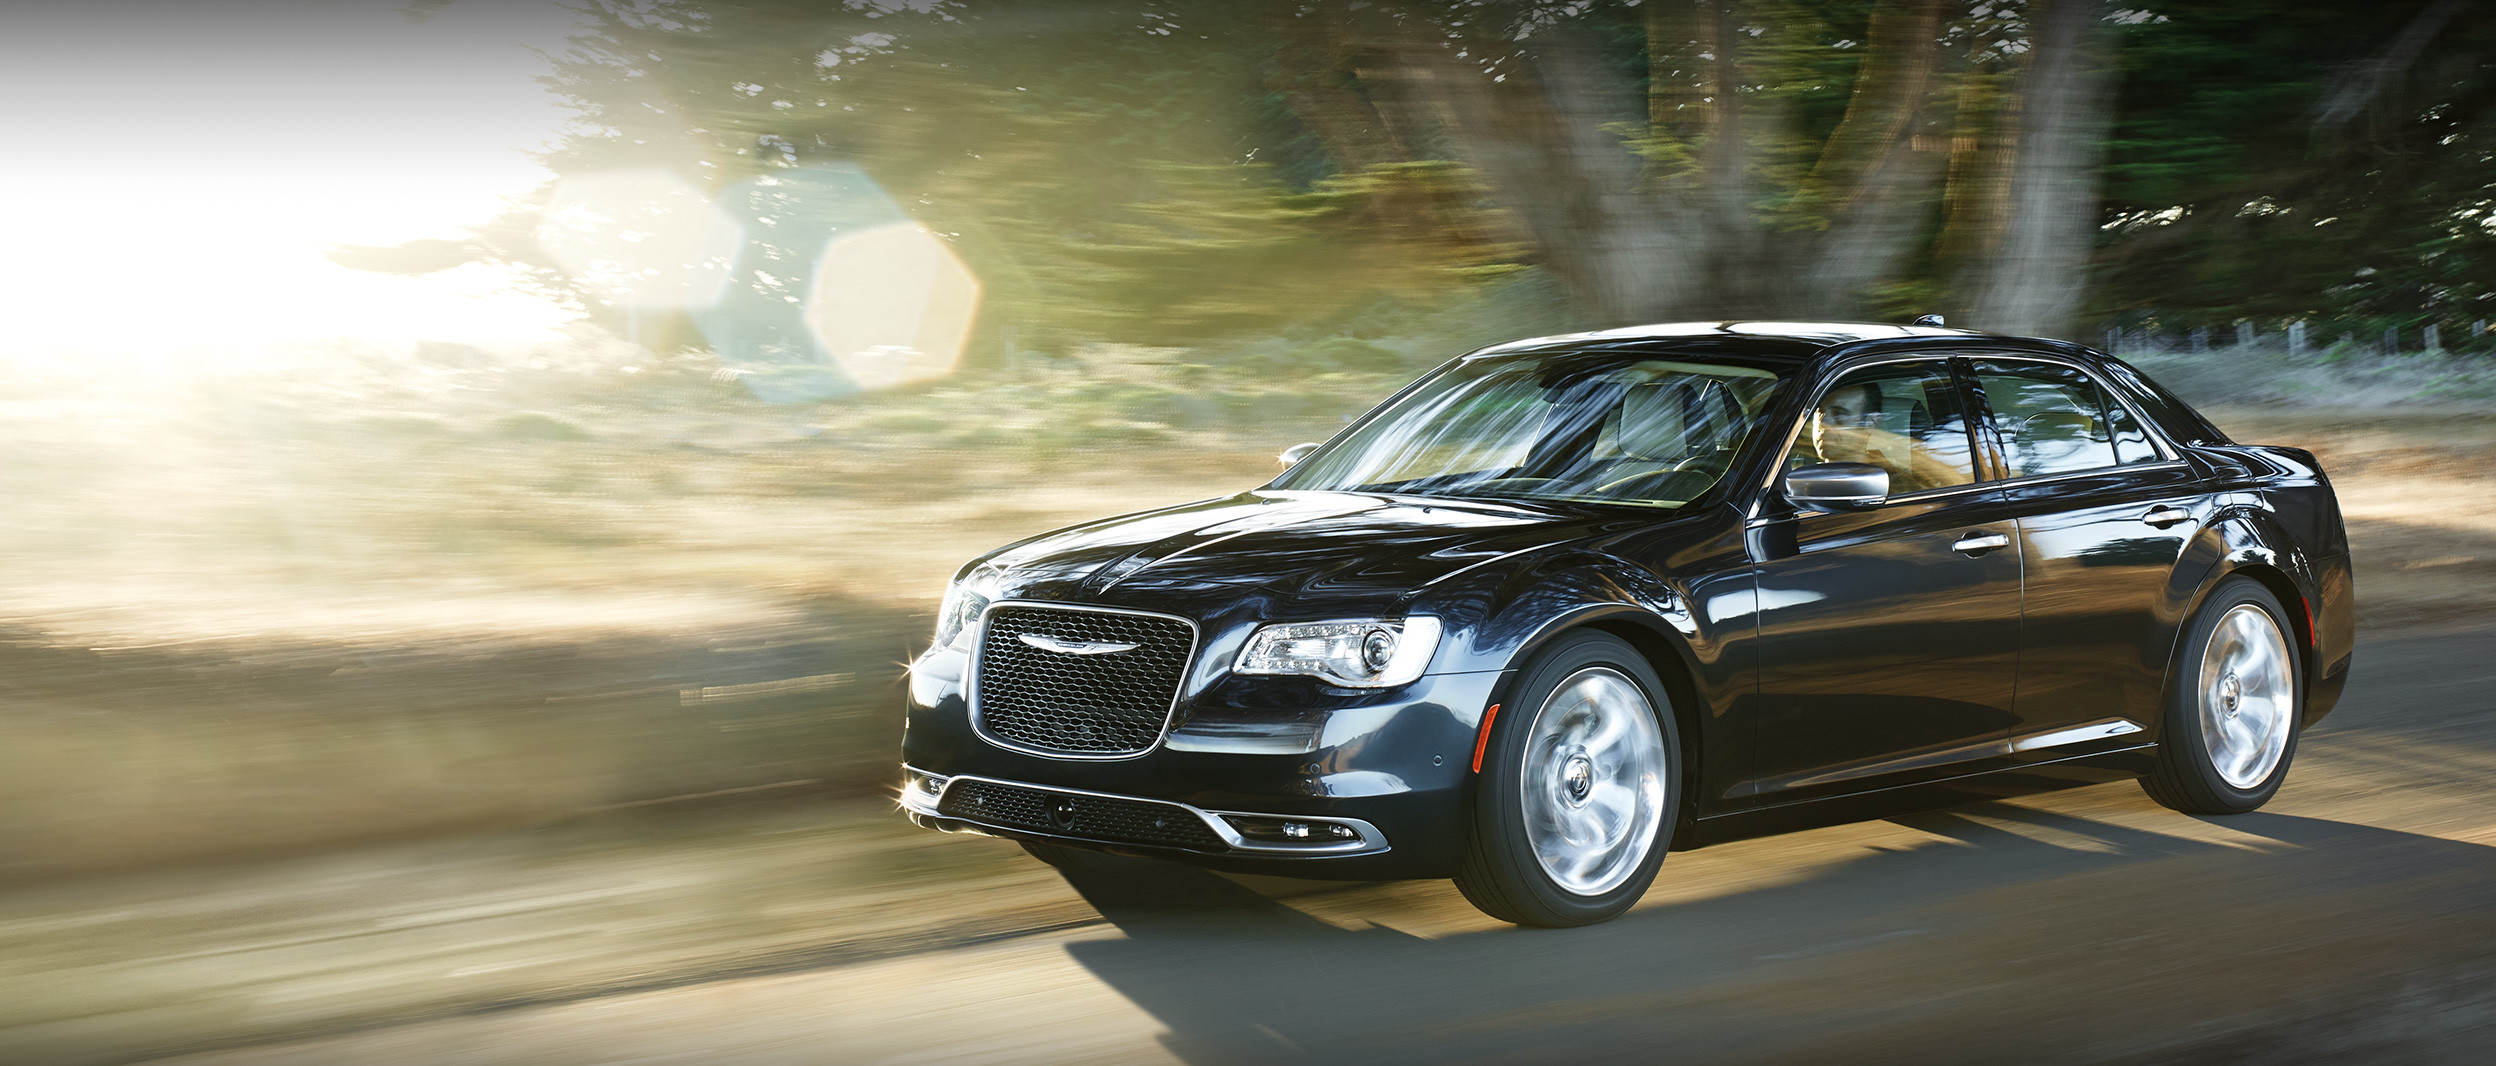 Black Chrysler 300 Speeding Down a Forest Trail